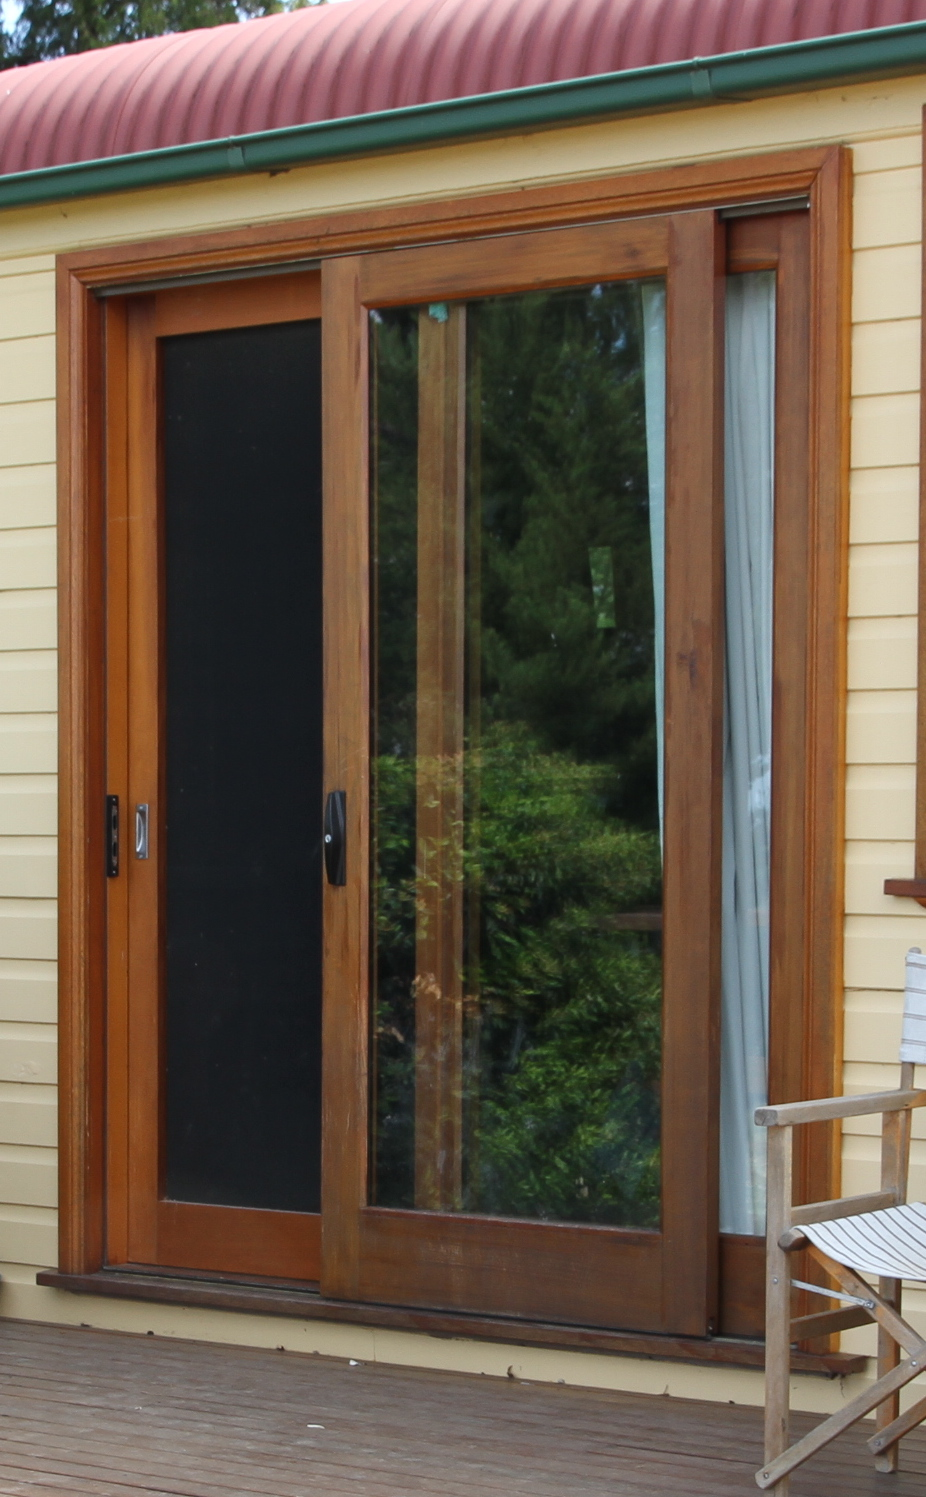 Flywire doors s le of our tailor made fly screen doors for Wooden sliding doors